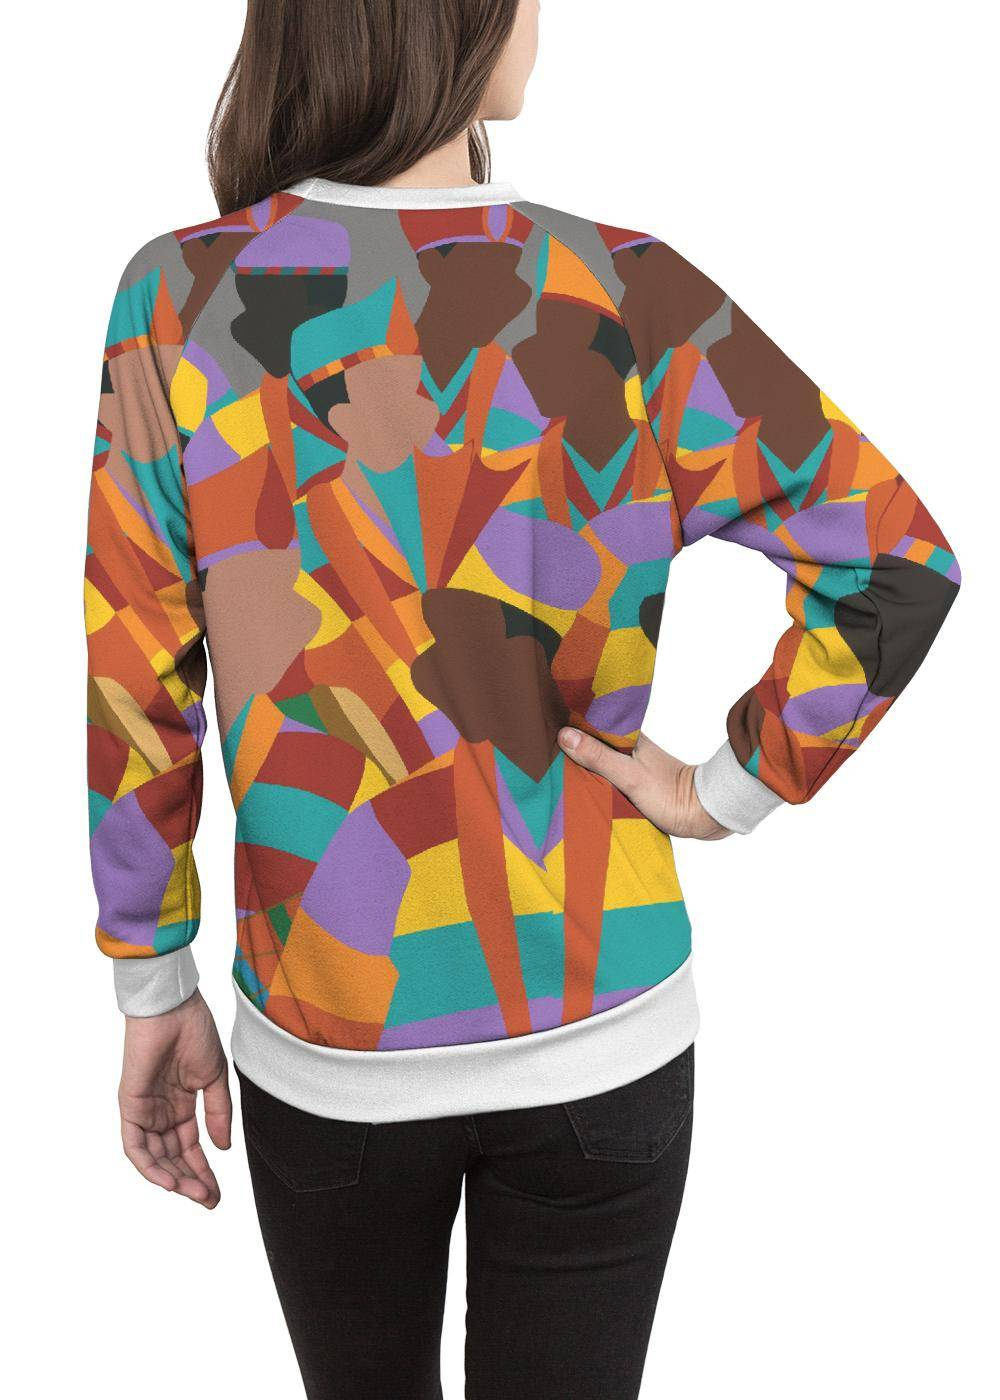 Synthia Saint James Women's Crewneck Sweatshirt - Diwali Trinidad by Synthia Saint James Original Artist  - Size: Extra Small